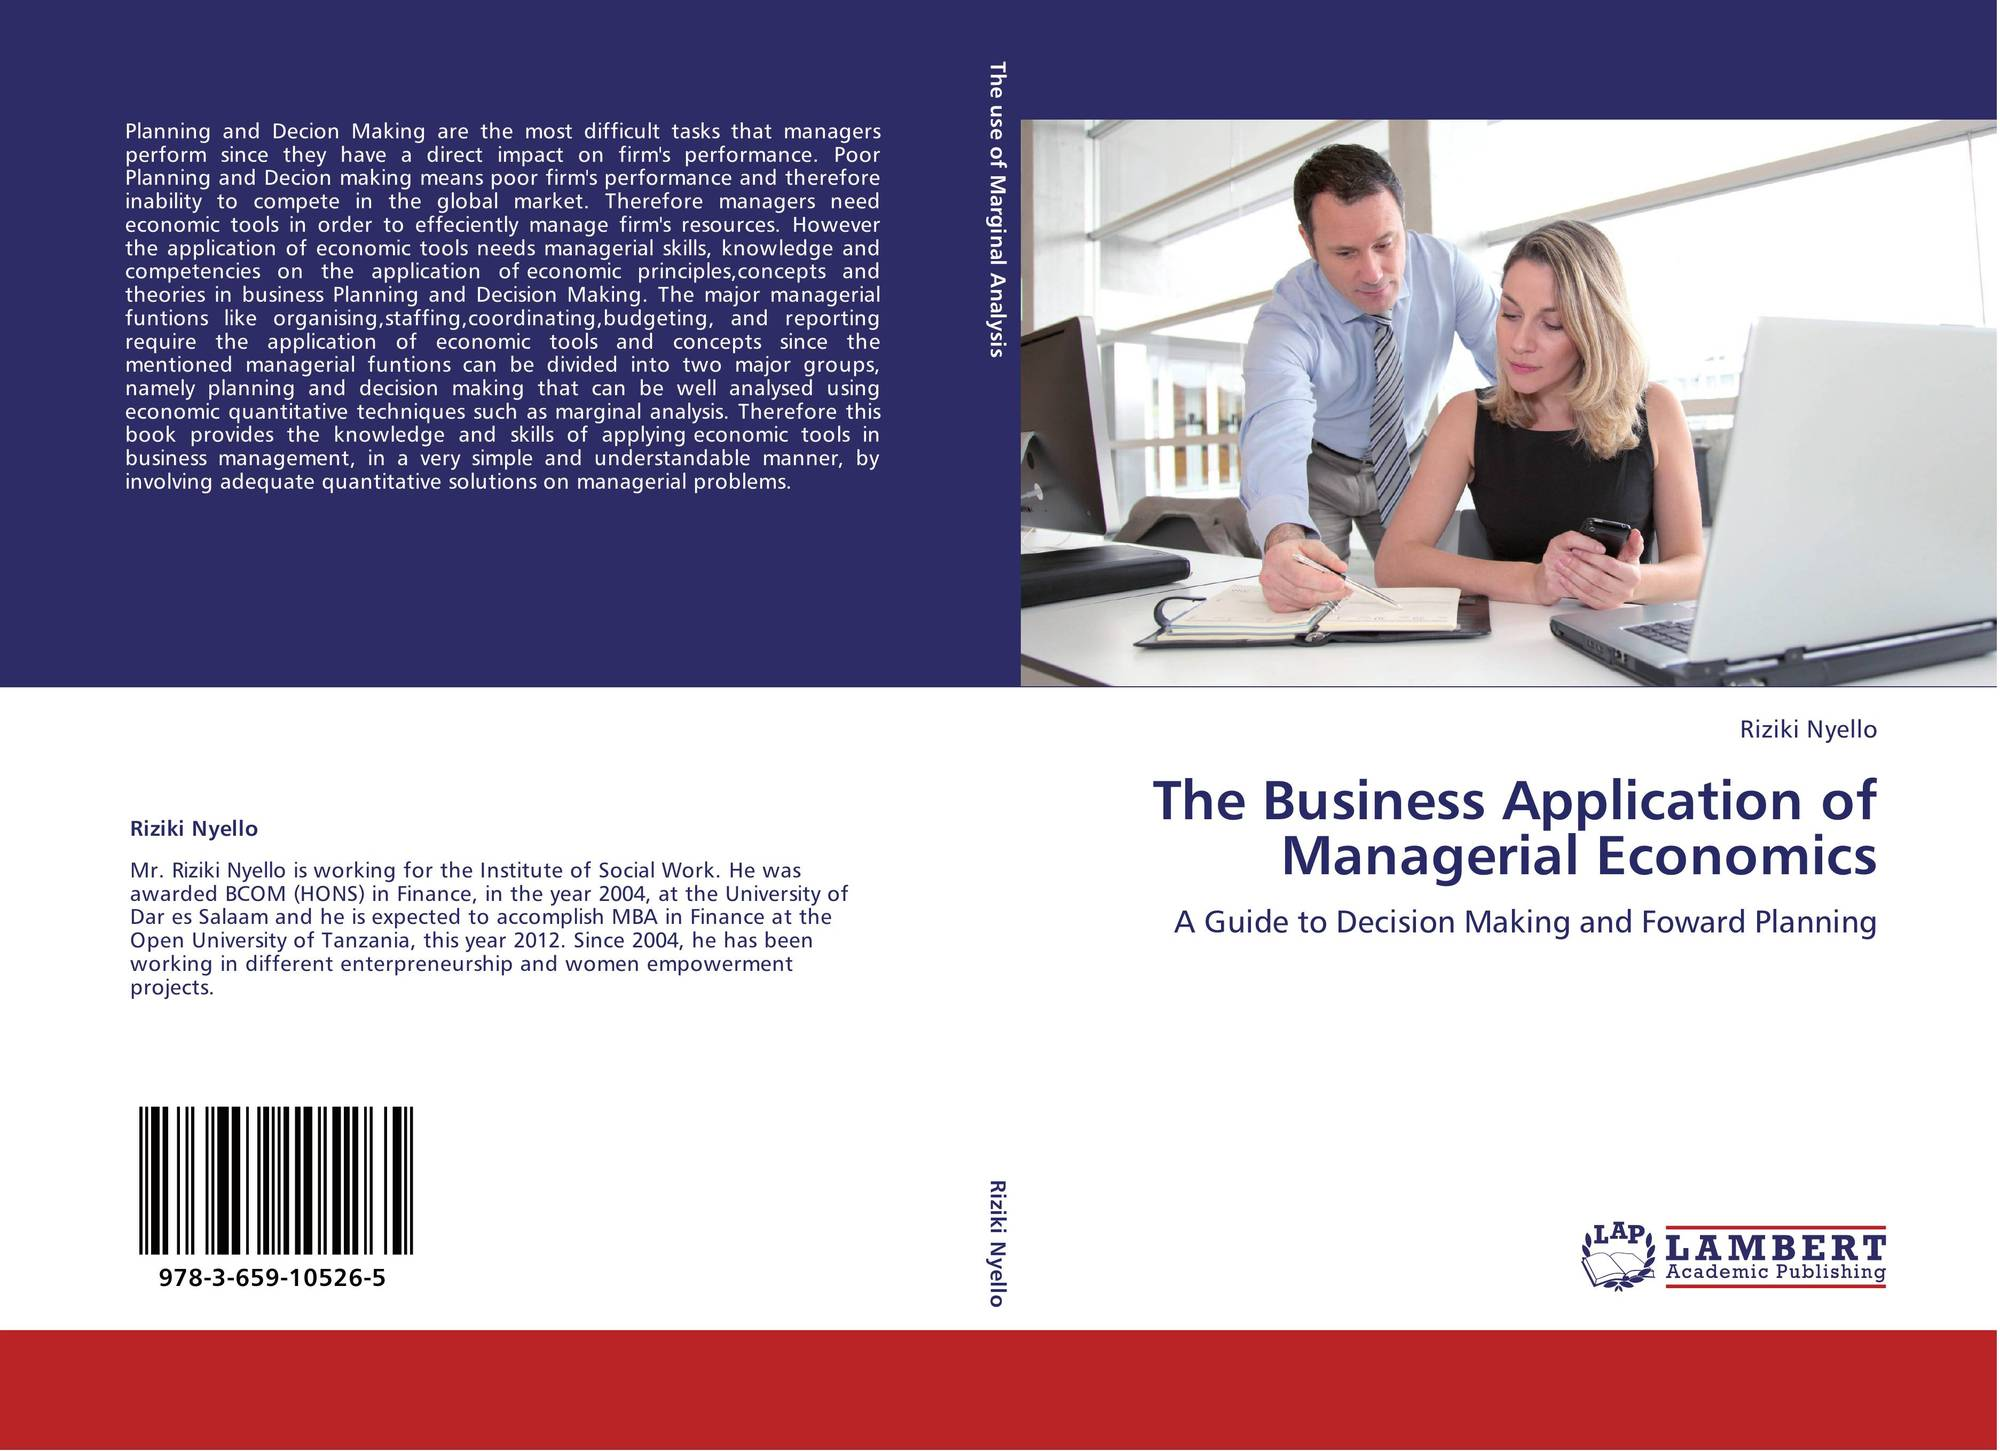 an analysis of business economics for management Lesson - 1 business economics- meaning, nature, scope and significance  business economic thus lies on the borderline between economic and business management and serves as a bridge between the two disciplines  generally fall under business economics 1 demand analysis and forecasting 2 cost and production analysis 3 pricing.